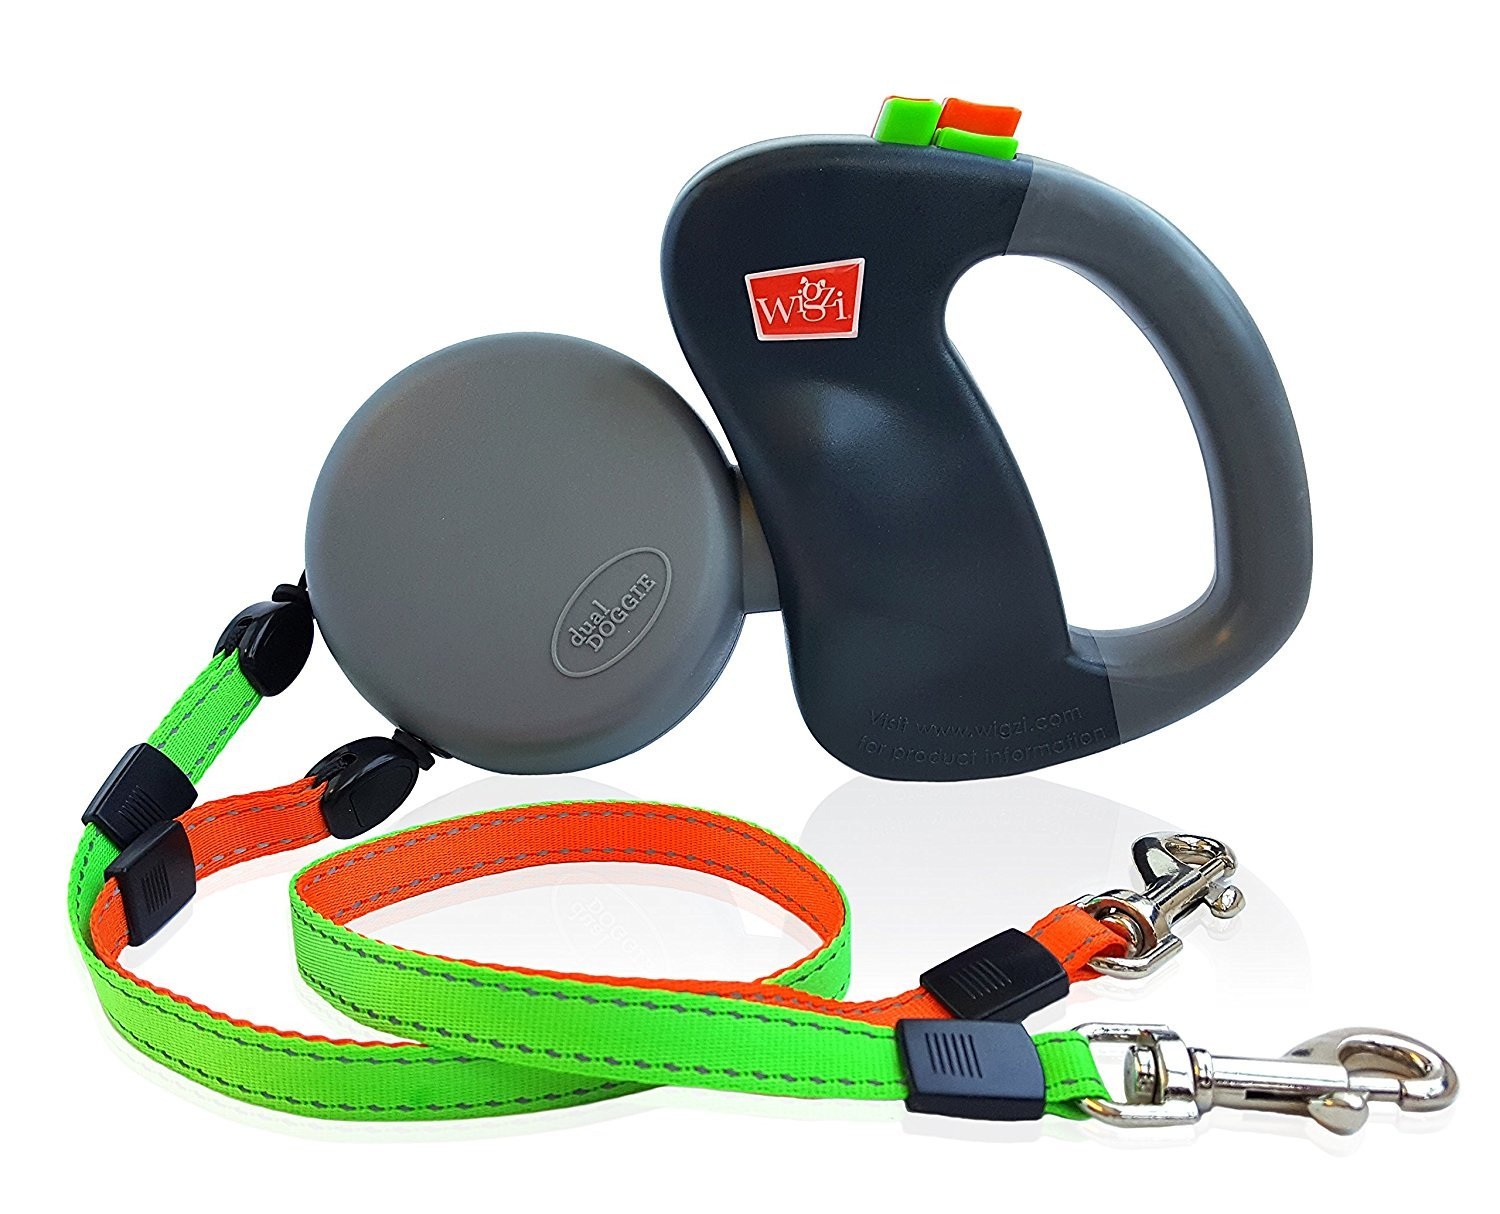 Dual Doggie Pet Leash - Up to 50 Lbs Per Dog and Zero Tangle - Walk Two Dogs At Once by WIGZI